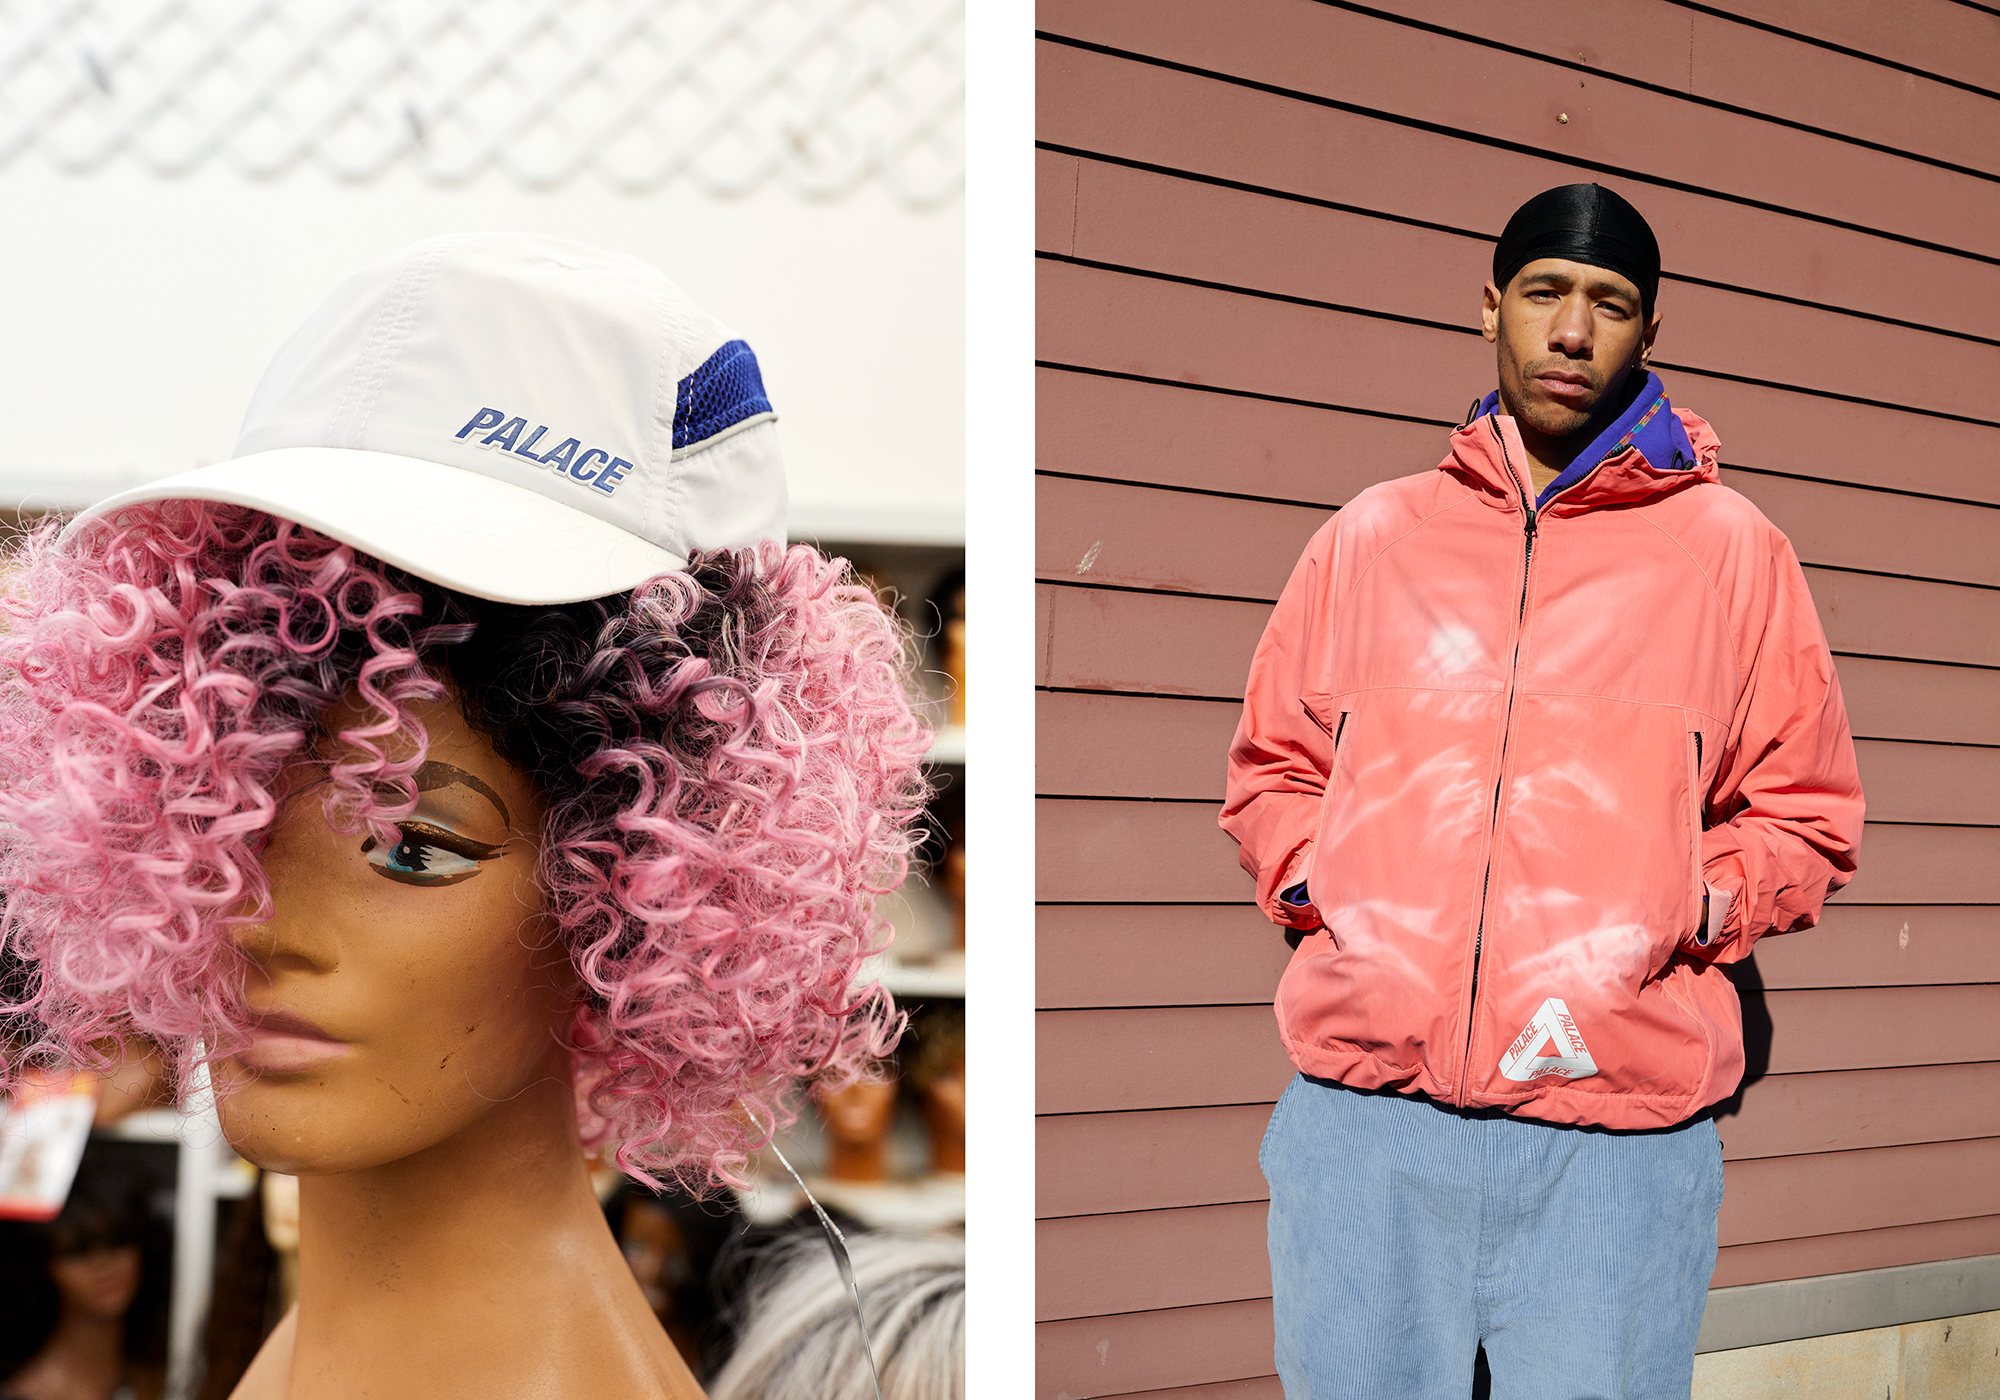 palace-skateboards-19-spring-collection-launch-20190223